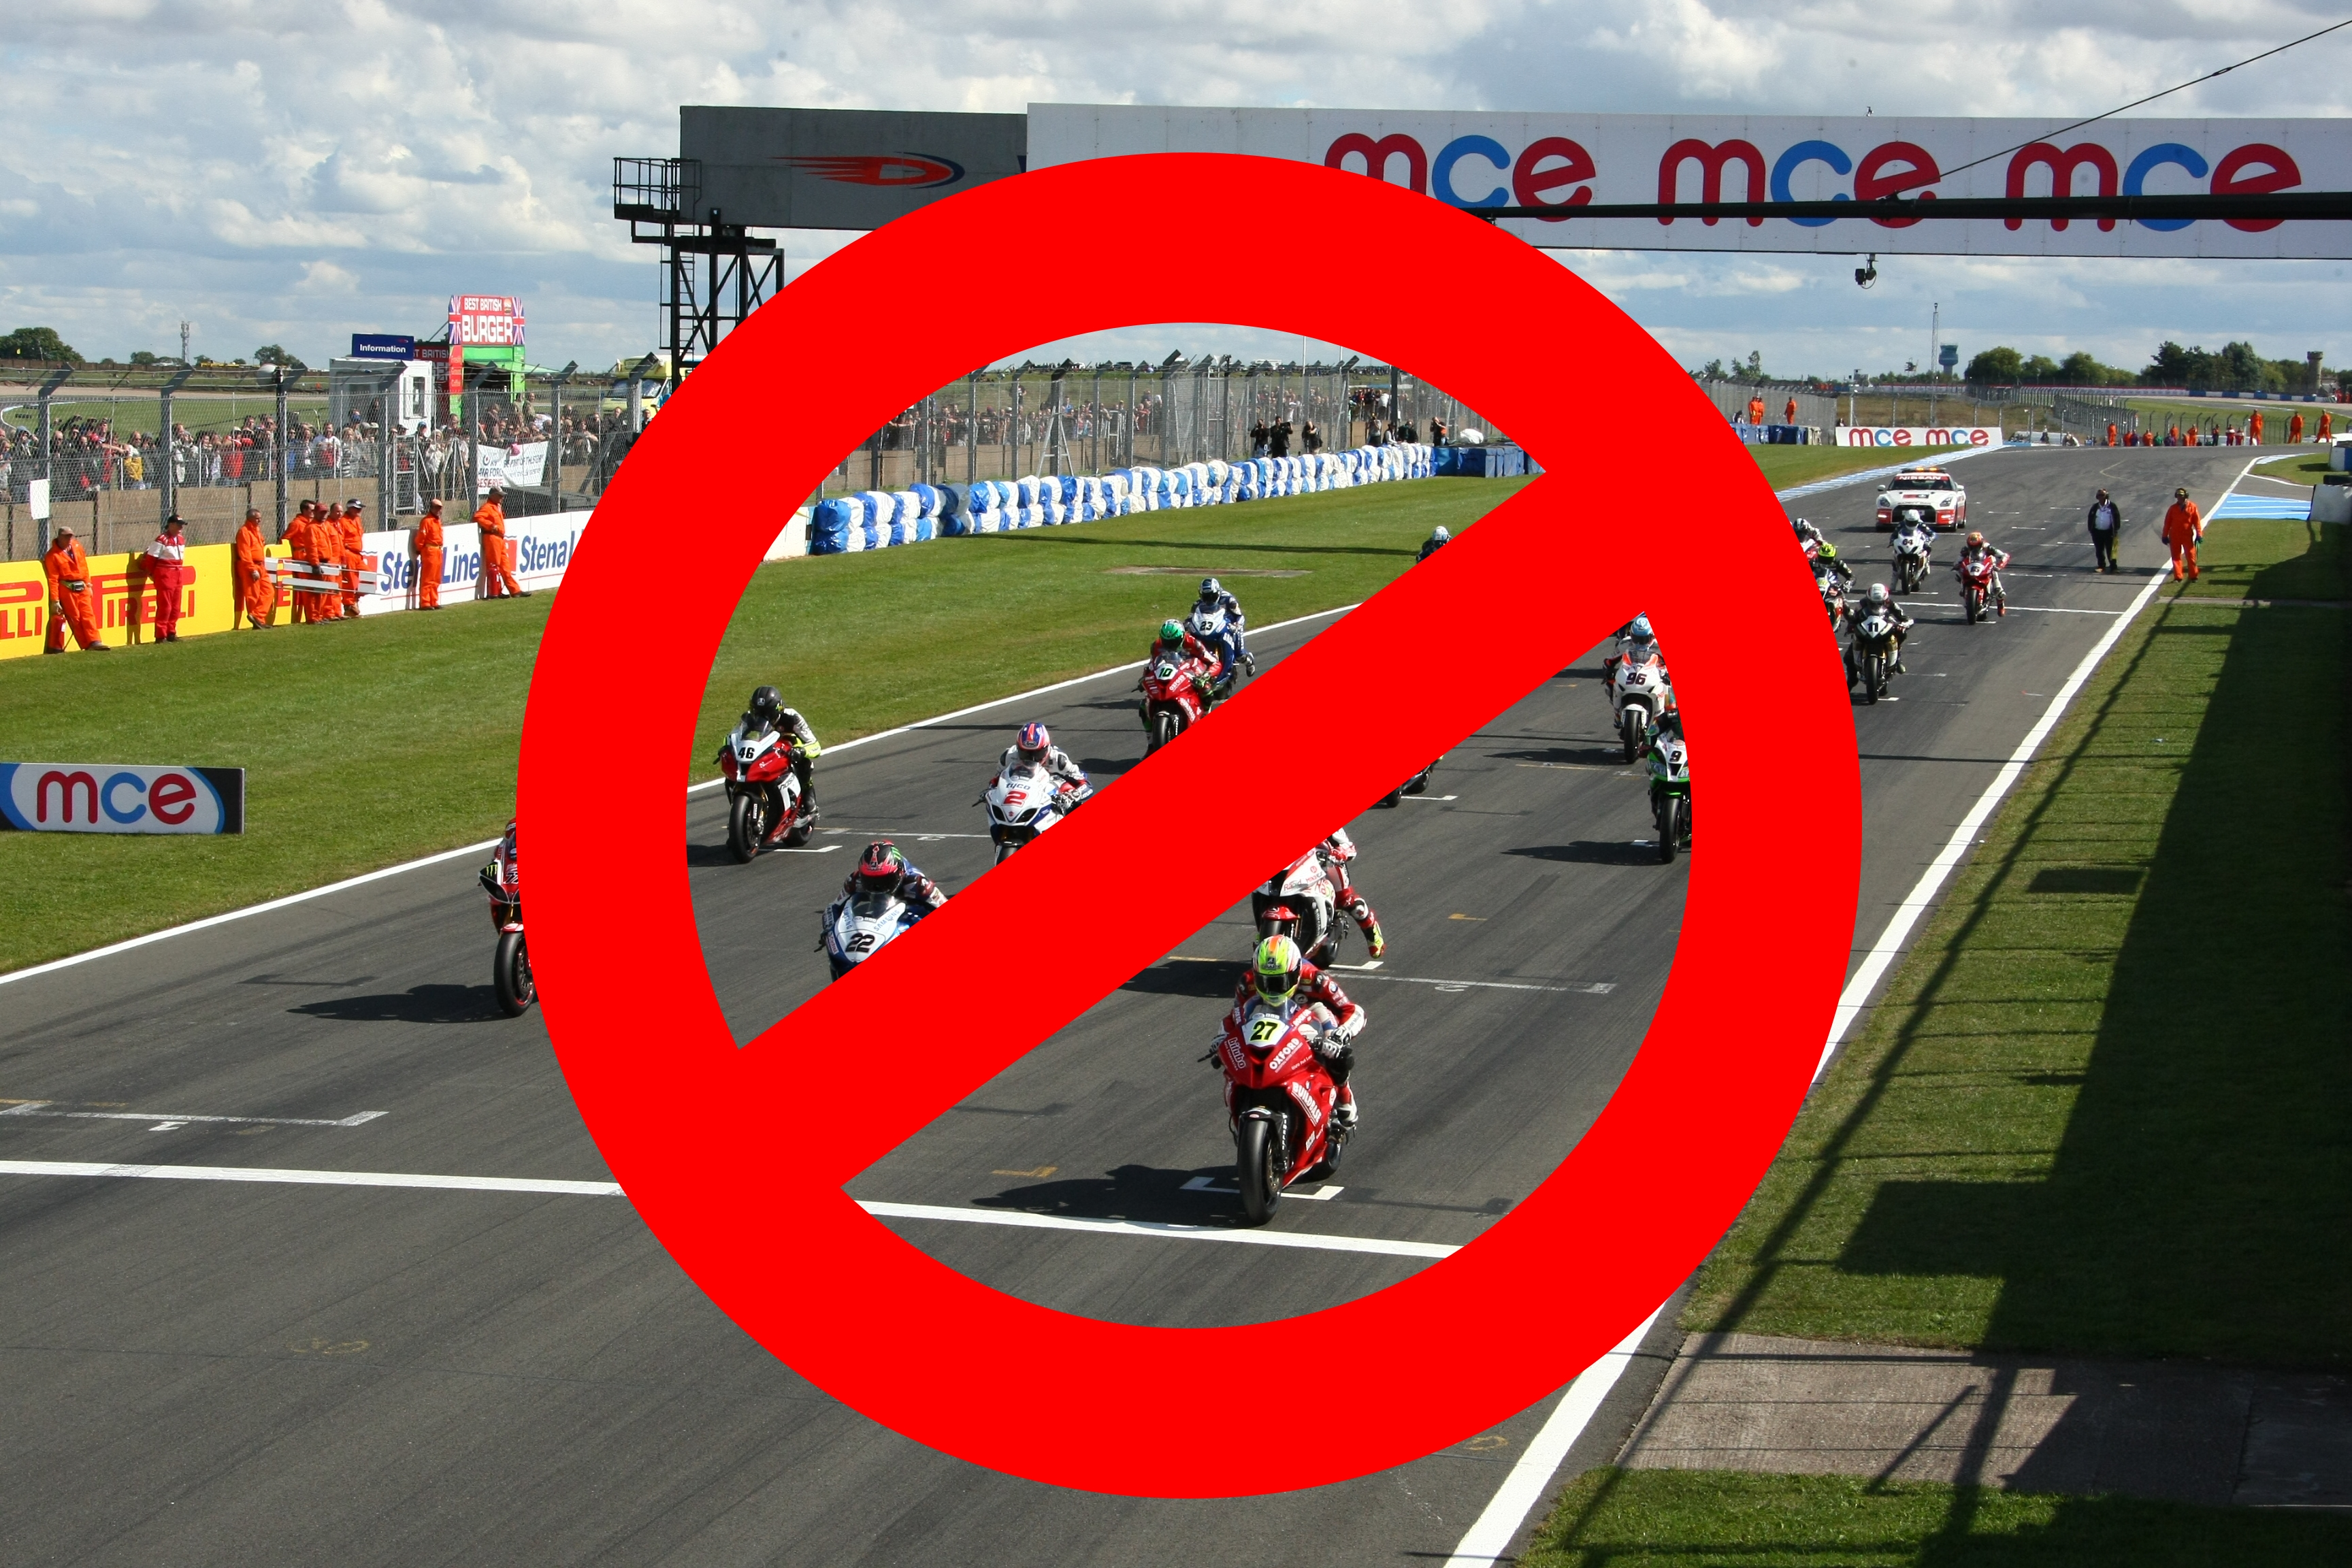 No More Motogp Action At Donington This Year The Circuit Of Wales